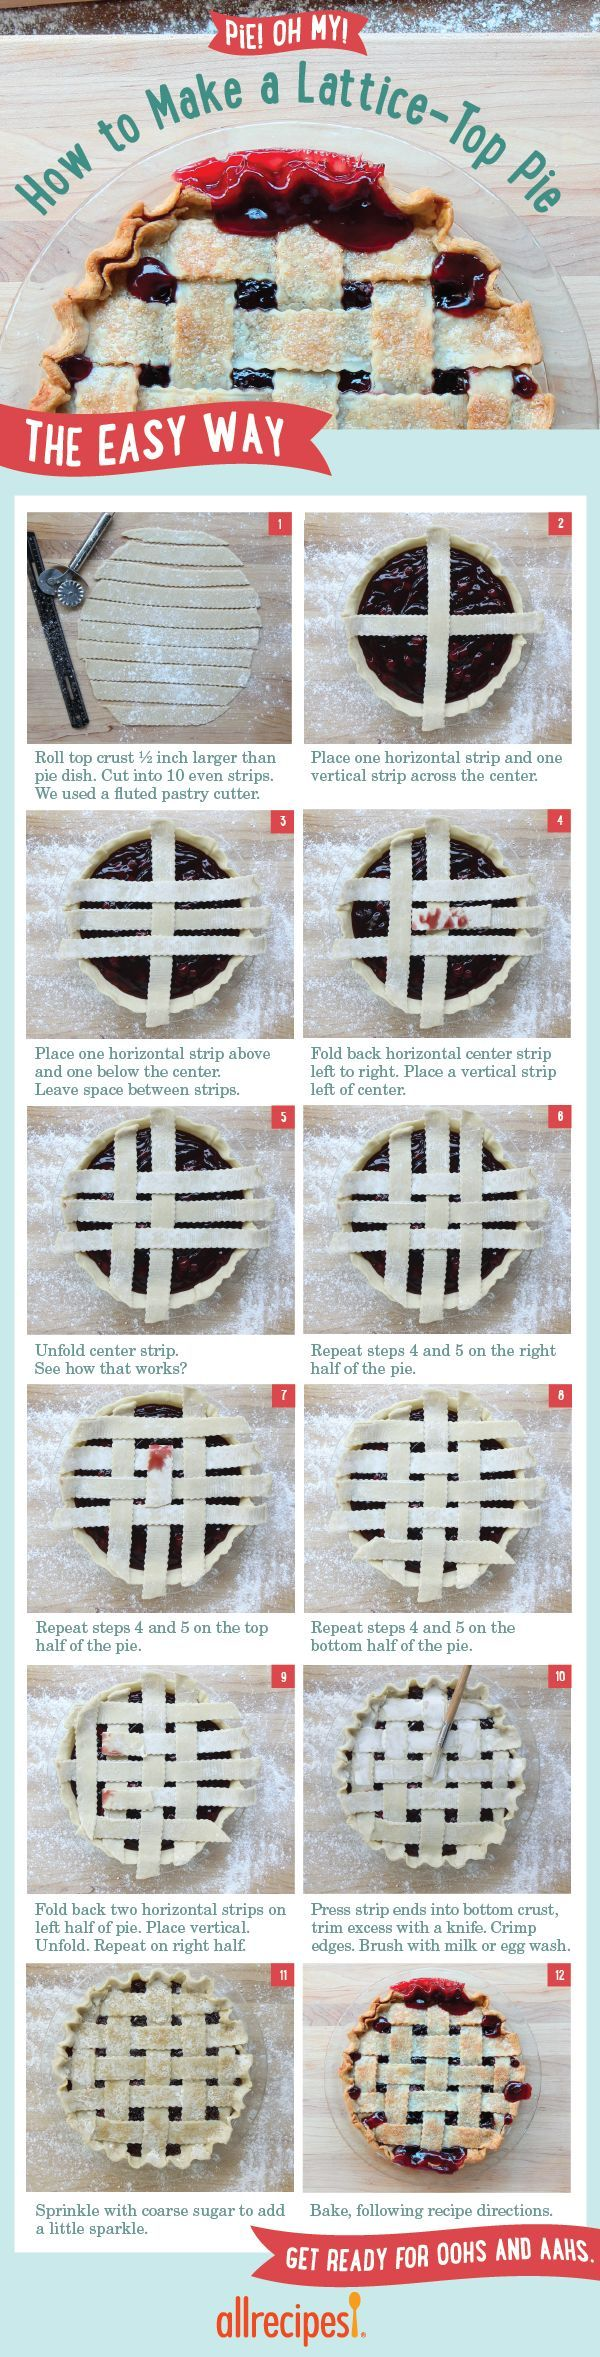 How To Make A Lattice Pie Crust The Easy Way | A lattice-top pie crust may look a little fancy. But these easy-to-follow steps help you weave pie dough like a pro.